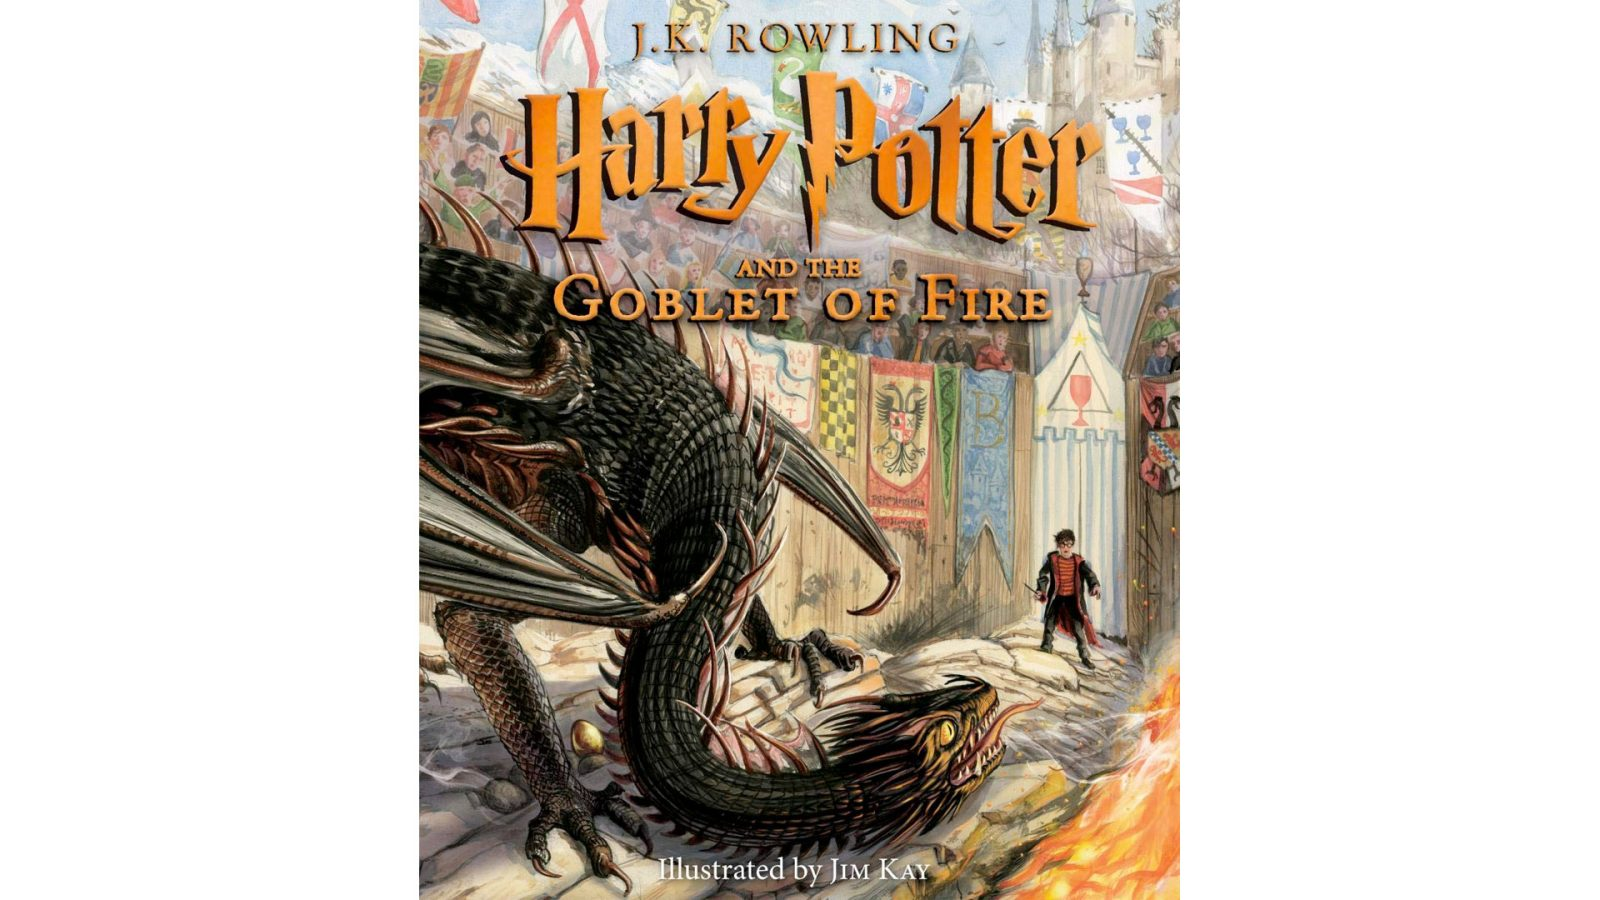 Enjoy Harry Potter and the Goblet of Fire in illustrated glory for just $19